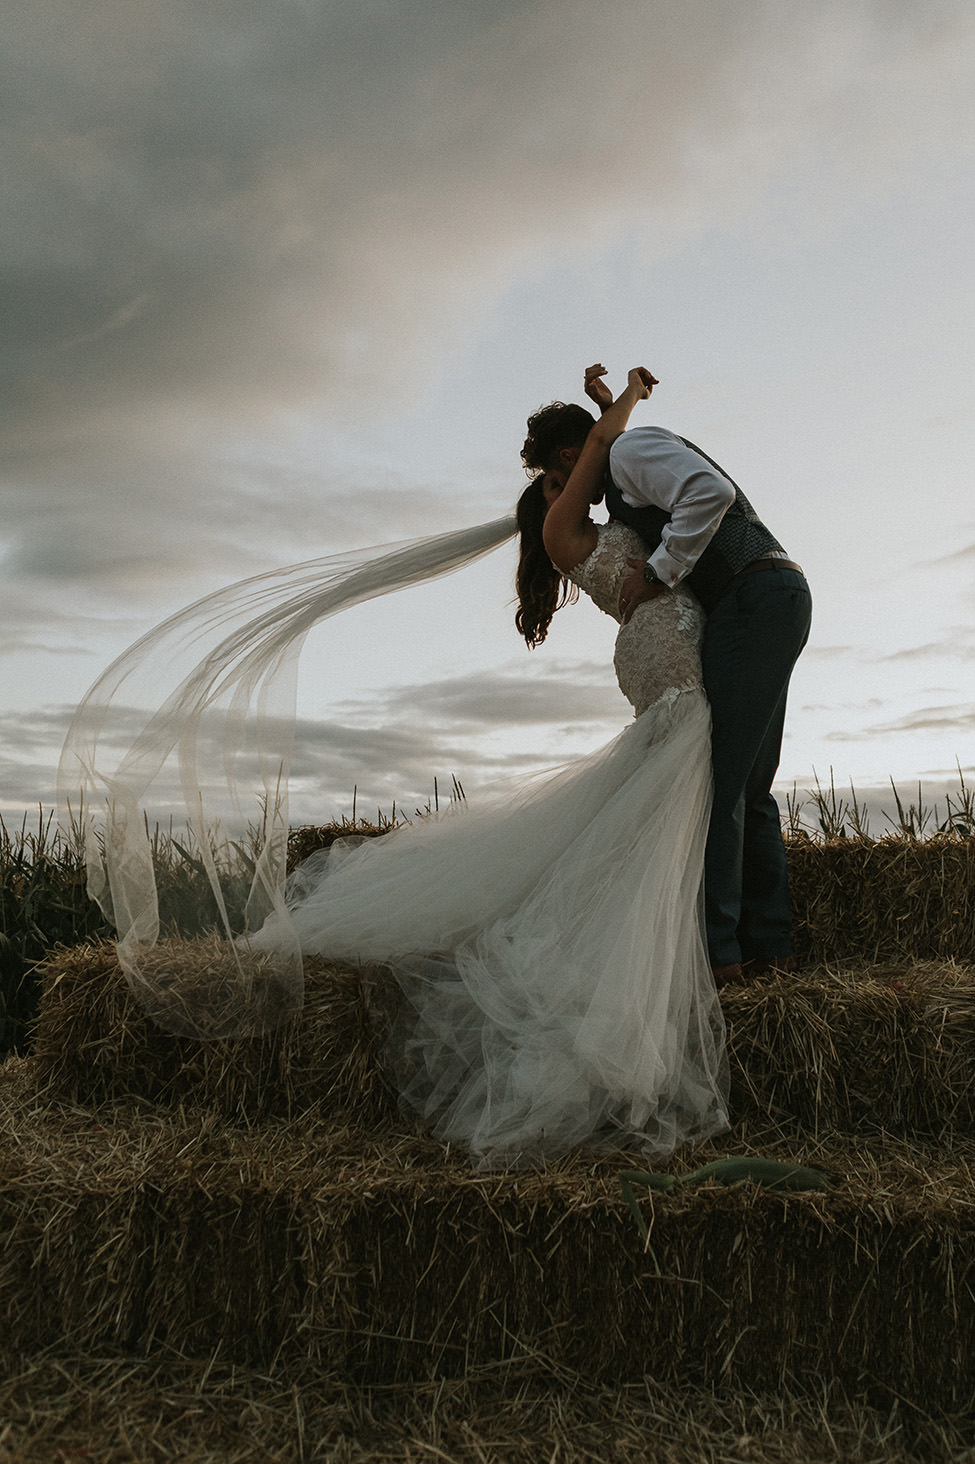 boho wedding south wales - Bride and Groom on bale of hay